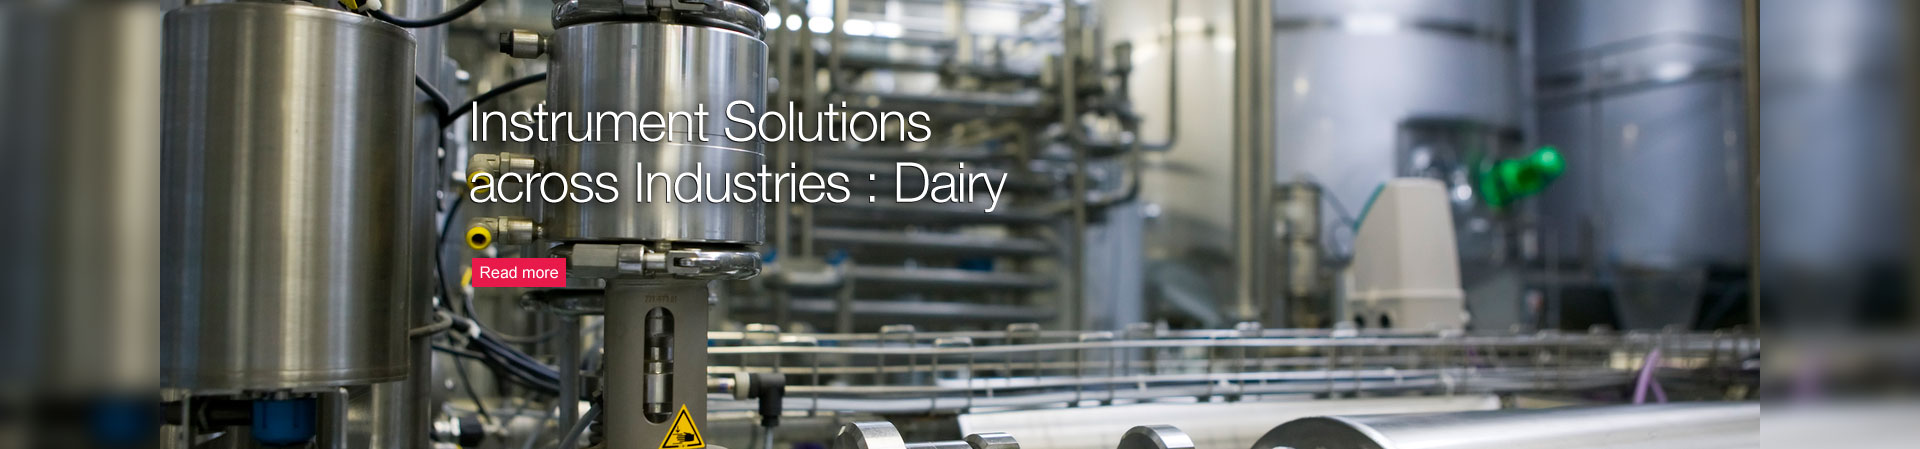 Instrument Solutions across Industries: Dairy